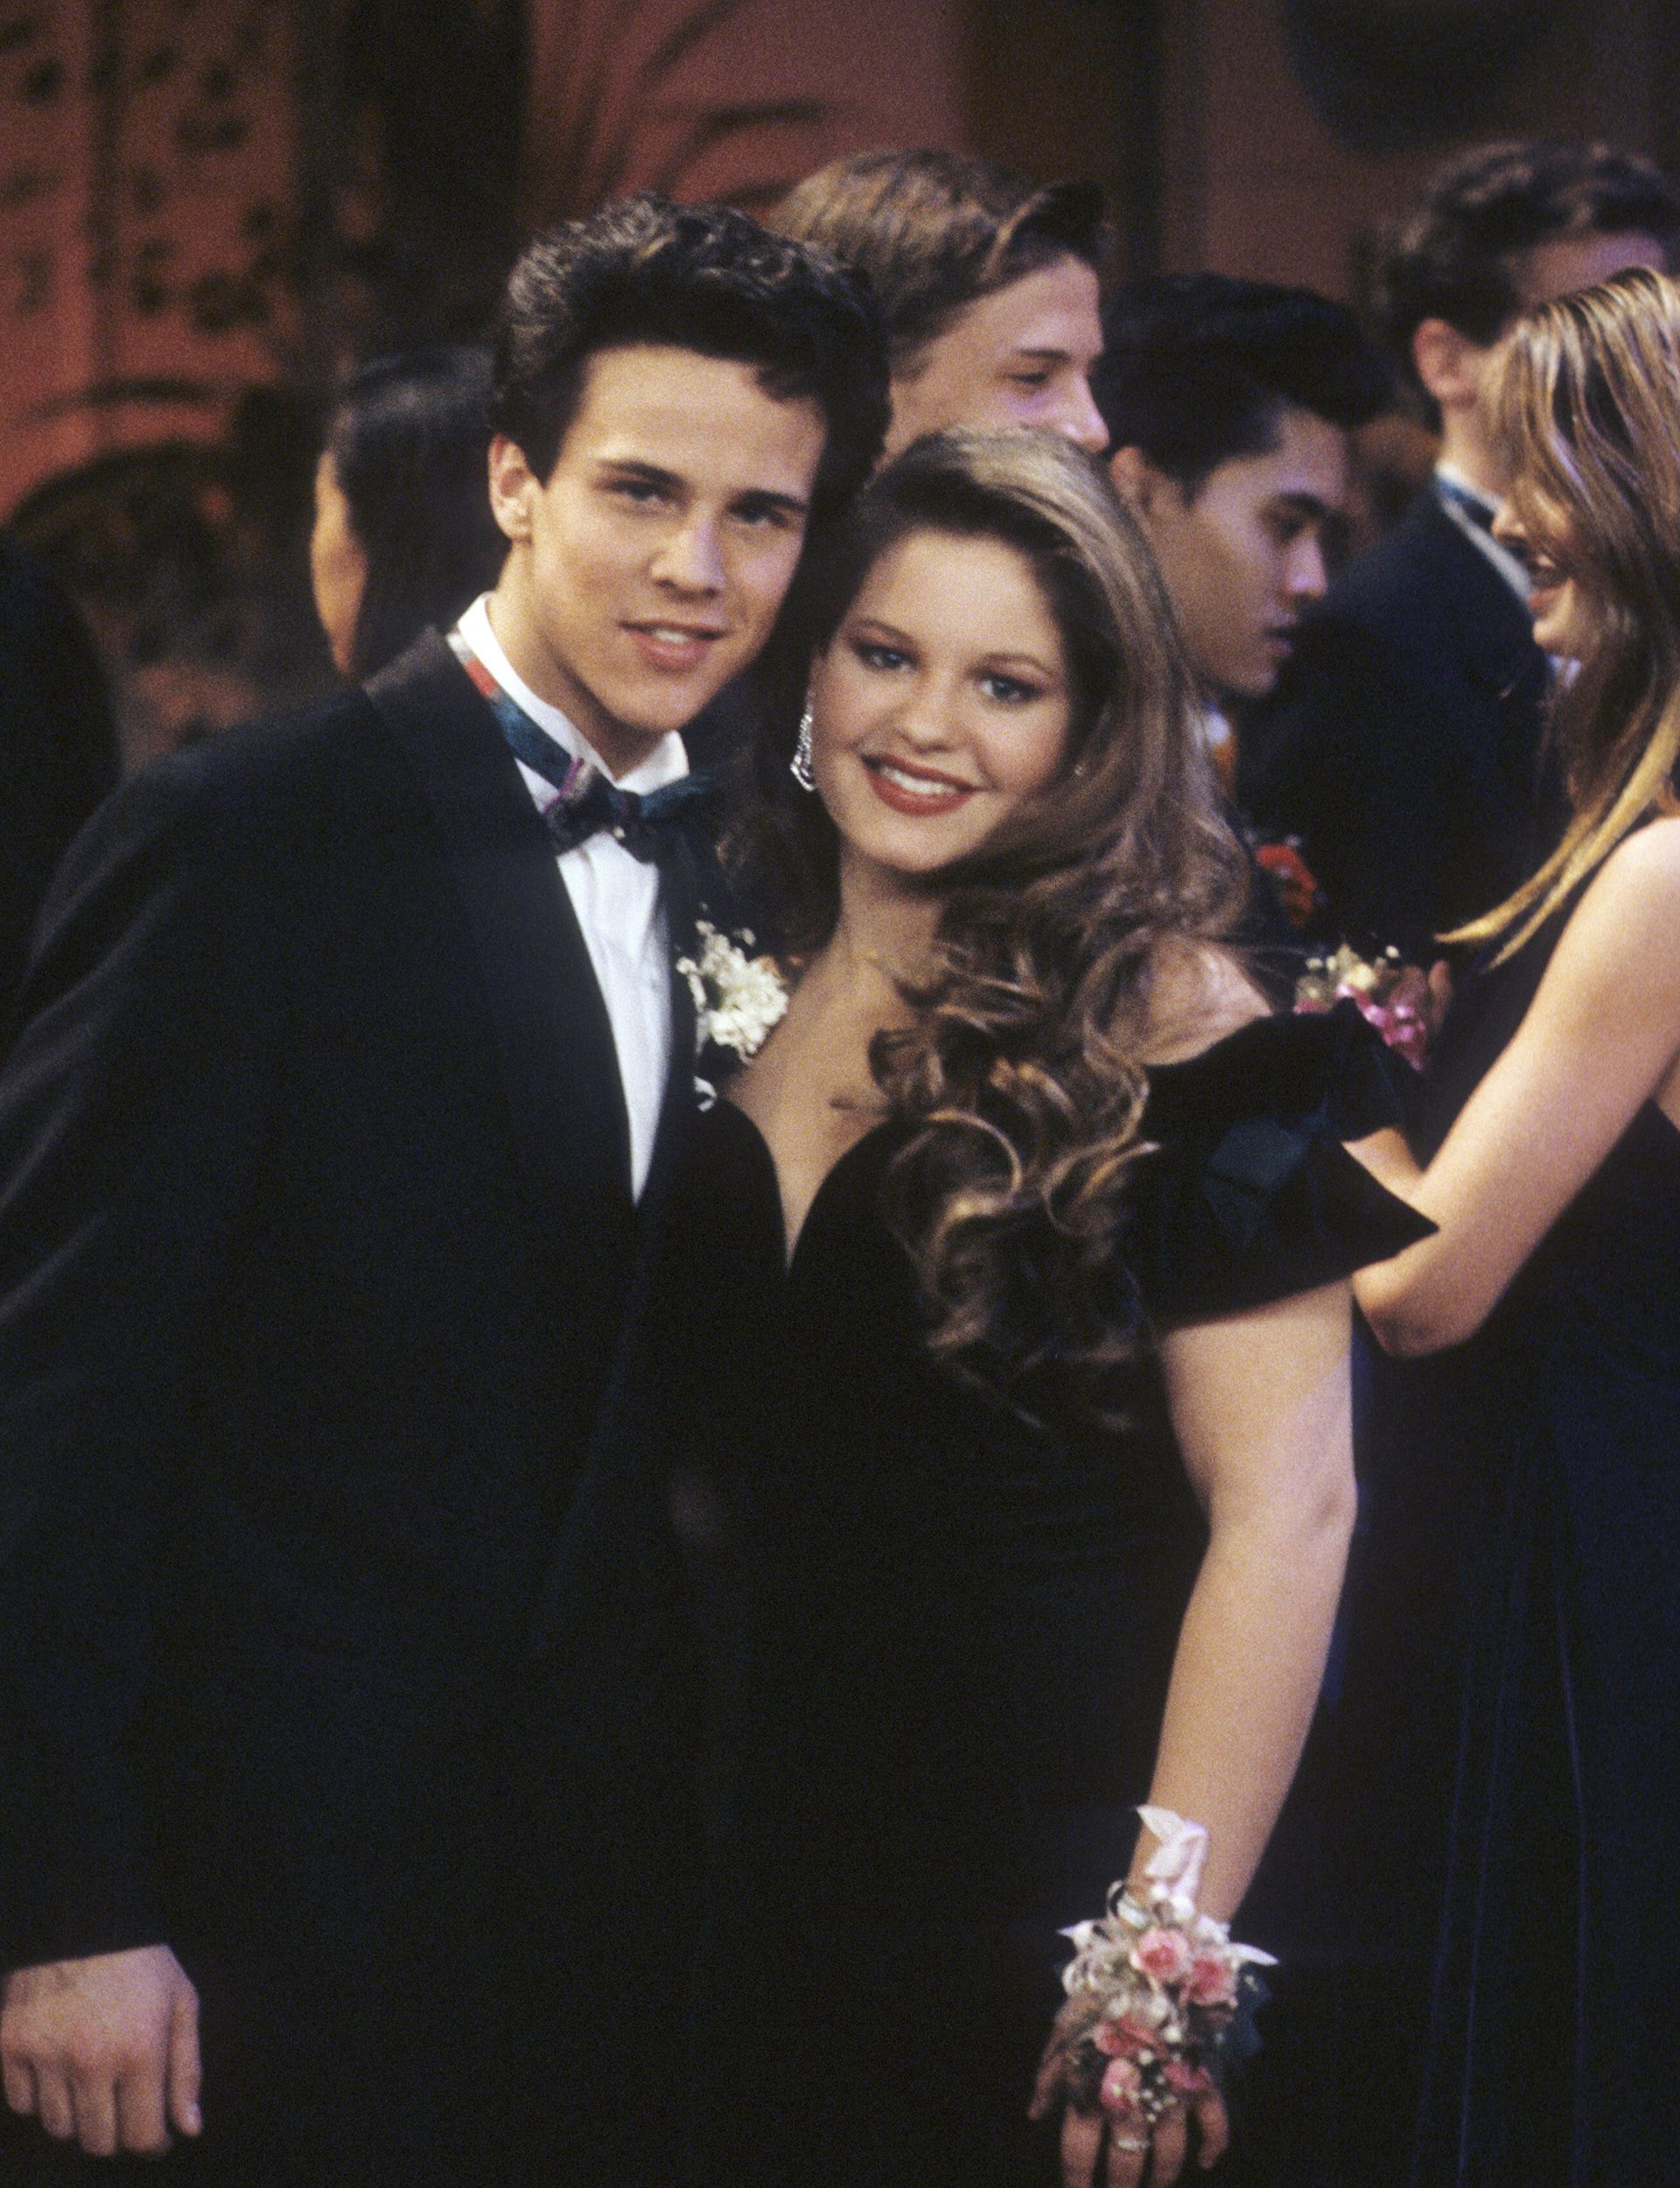 D.J.u0027s Ex Boyfriend Steve Returned For The Series Finale Of Full House, And  Their Prom Night Was Totally Swoon Worthy! Her Puffy Sleeved Black Prom  Dress Is ...